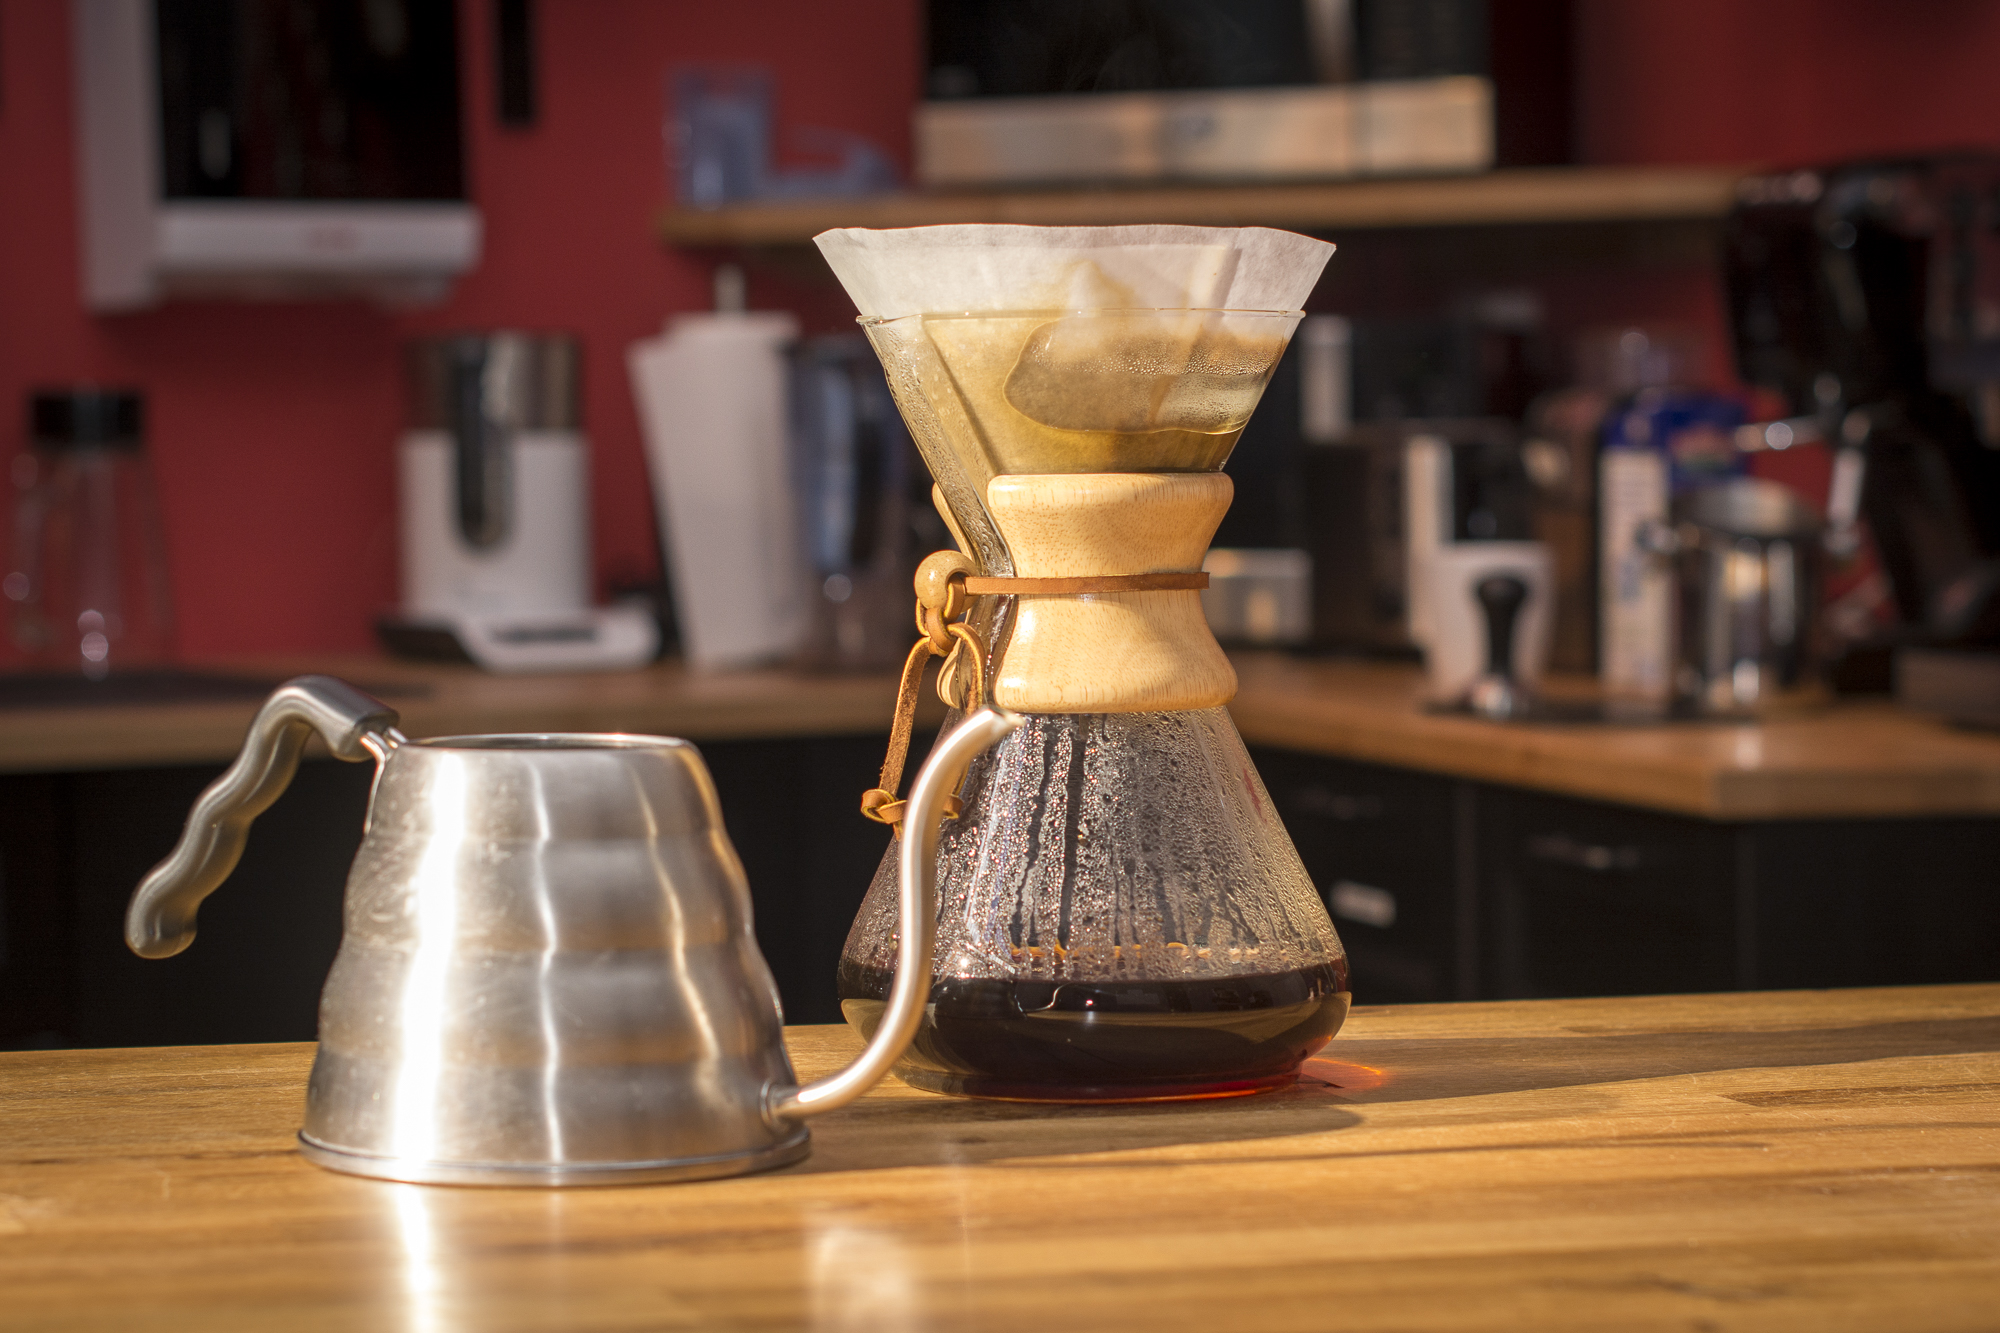 Chemex container with pourer